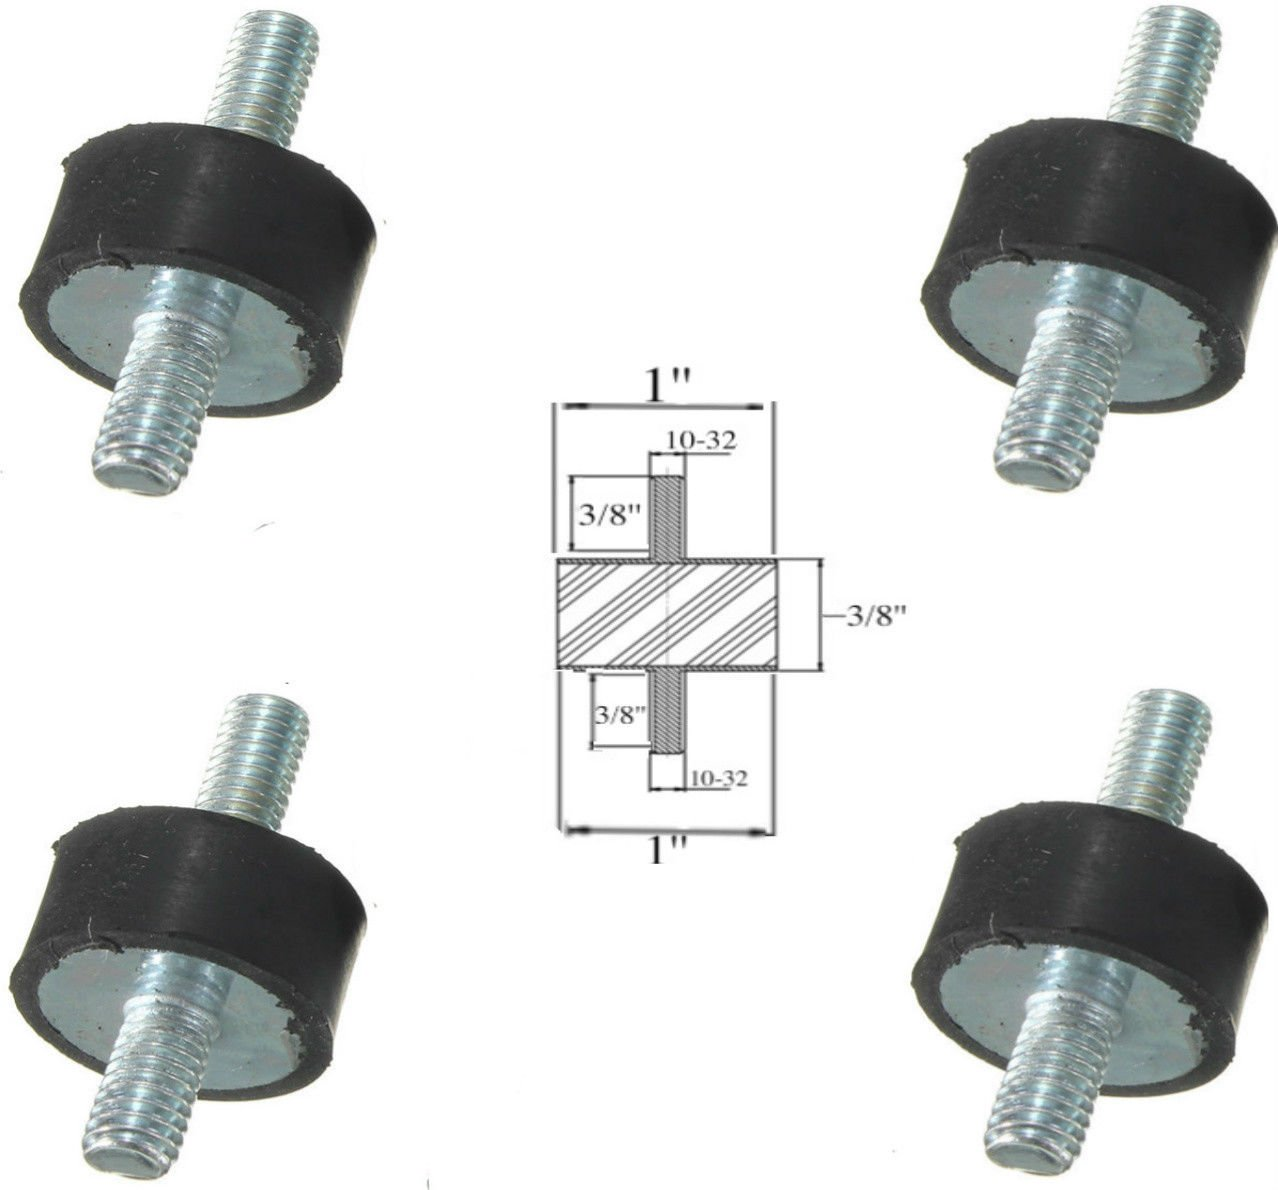 Lot of (4) Rubber Anti Vibration Isolator Mounts Rubber Height 3/8'' x 1'' Rubber Diameter - Studs 10-32 x 3/8'' Length